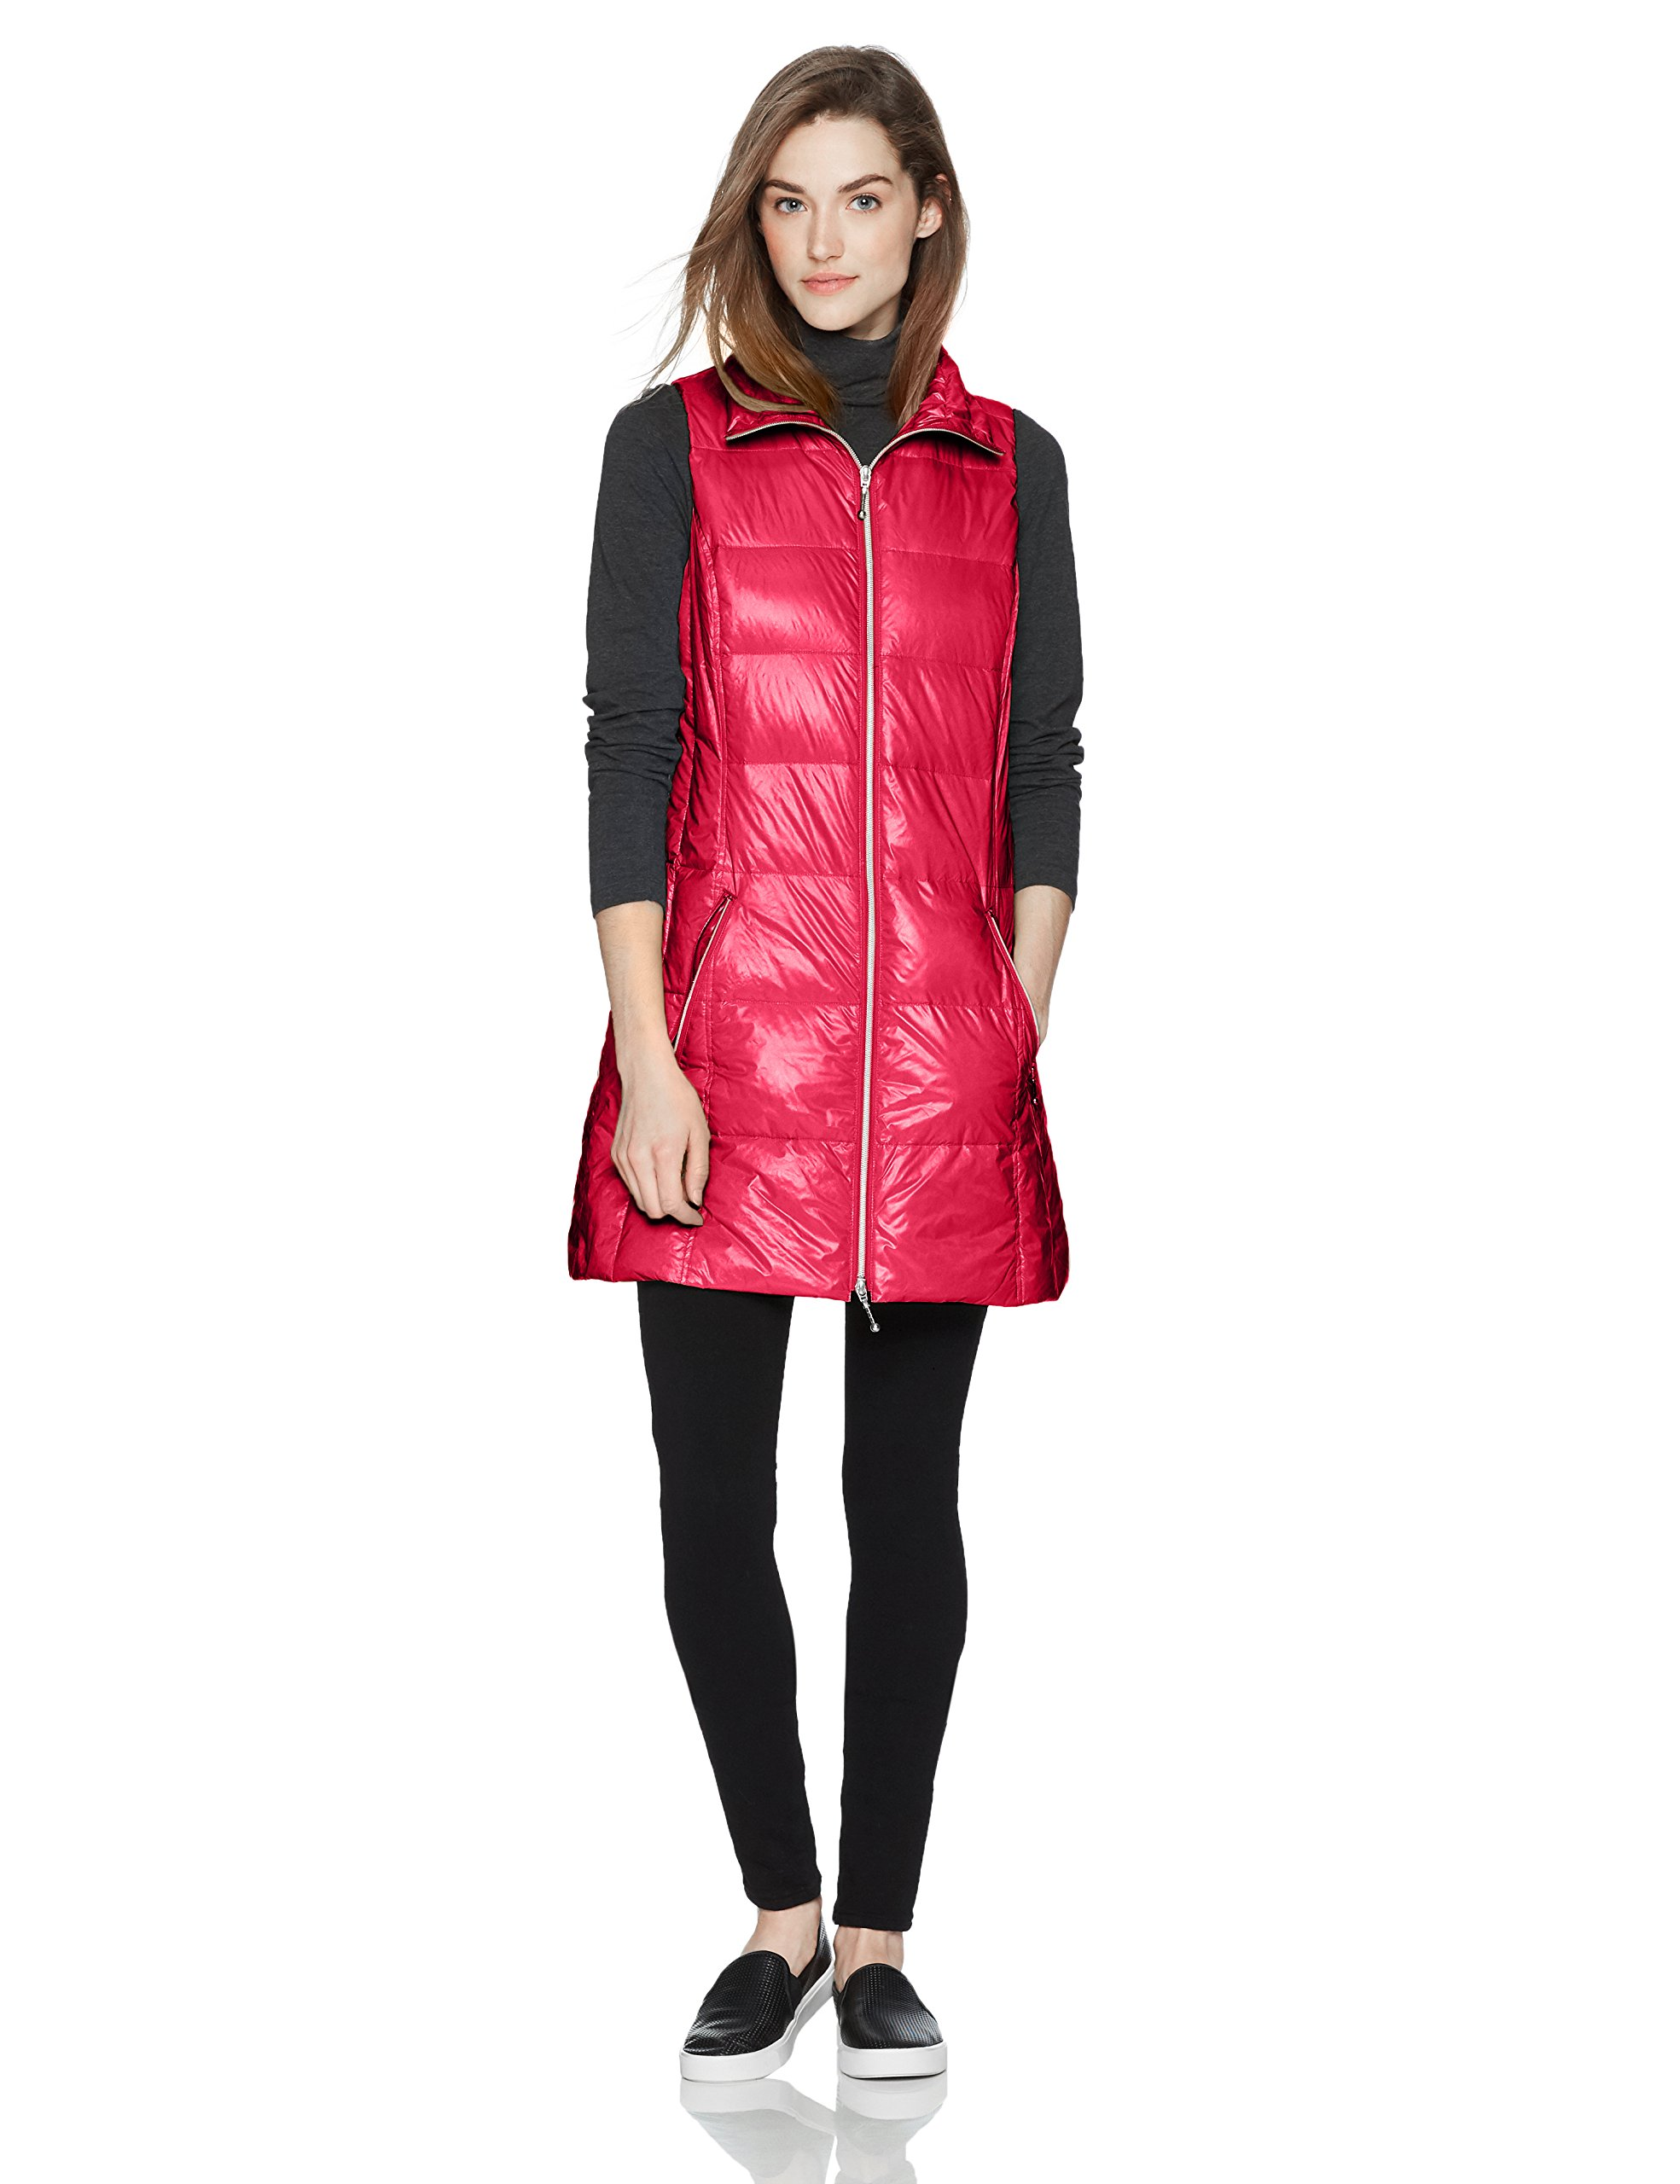 Coatology Women's Classic Long Down Vest, Fuchsia, XS by Coatology